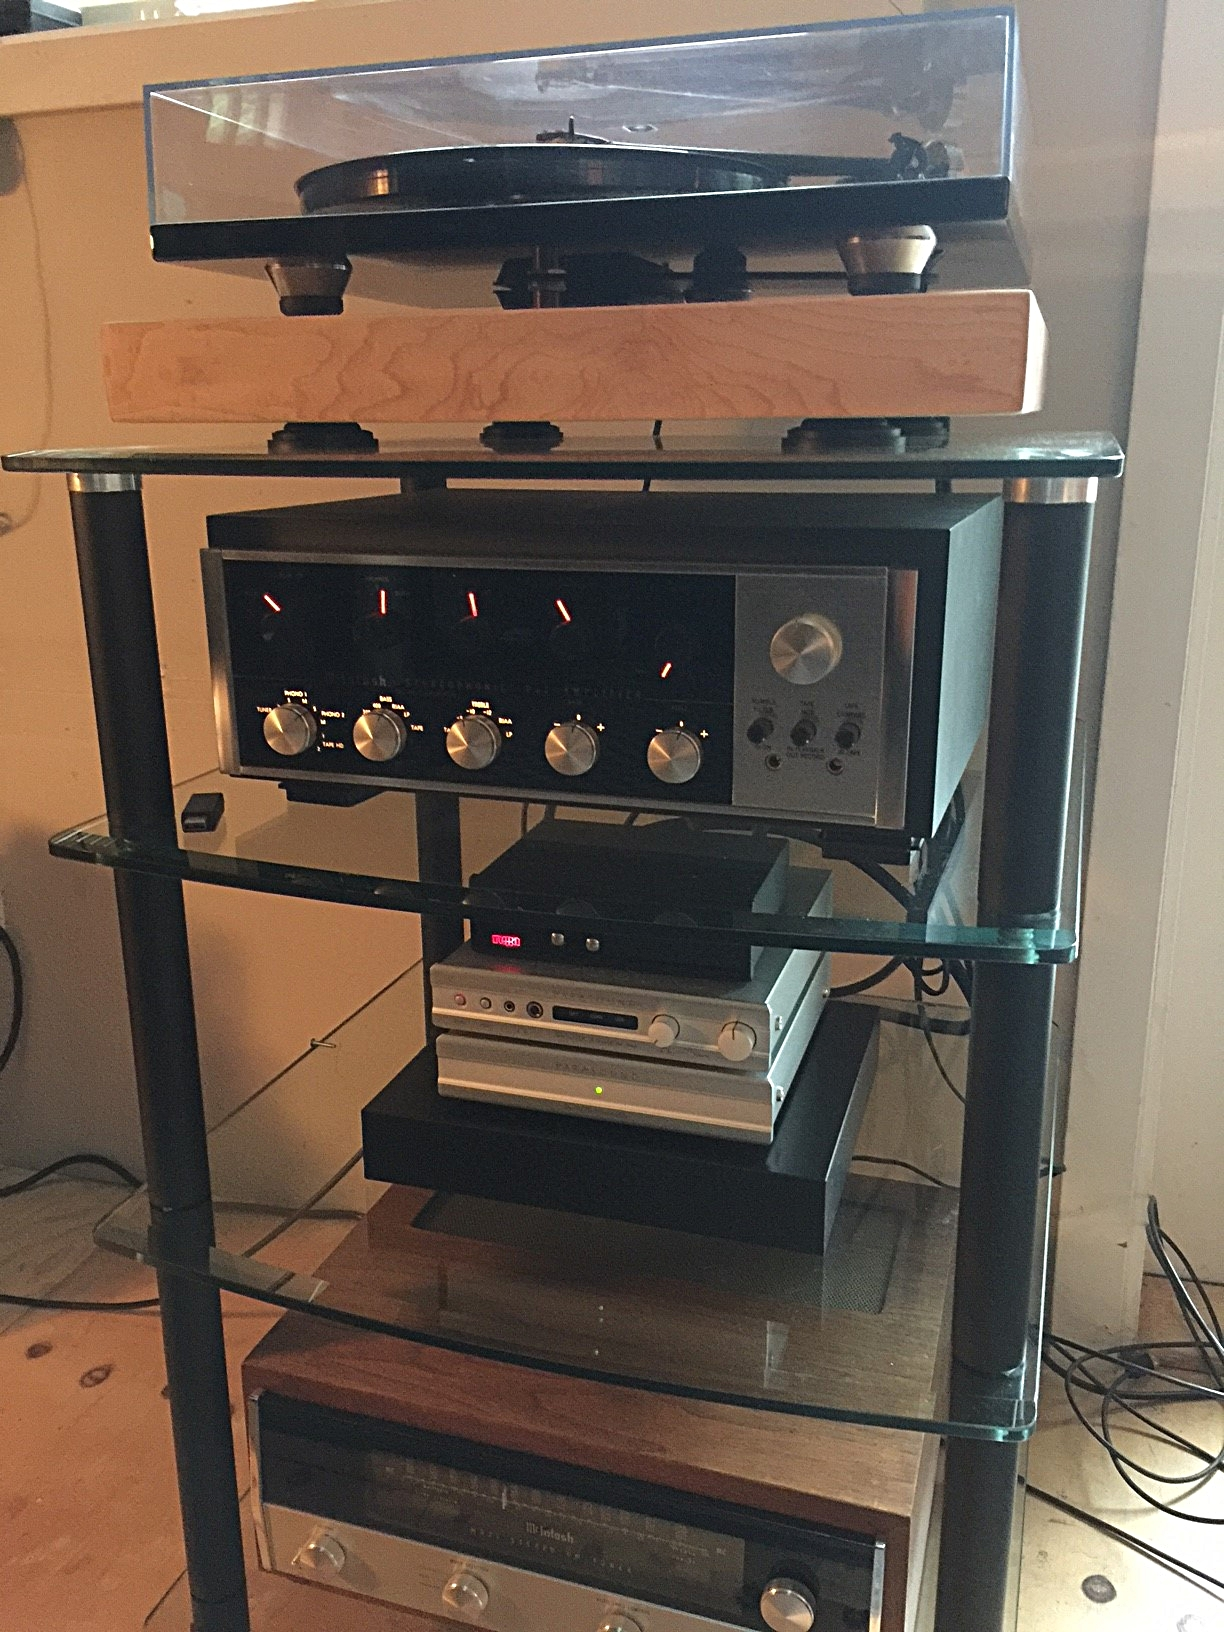 Bob A system : McIntosh MR71/C20, Rega RP6/Elys cartridge, Parasound DAC/Phono, McIntosh MC30 monoblocks, 1976 Klipsche KHorns.